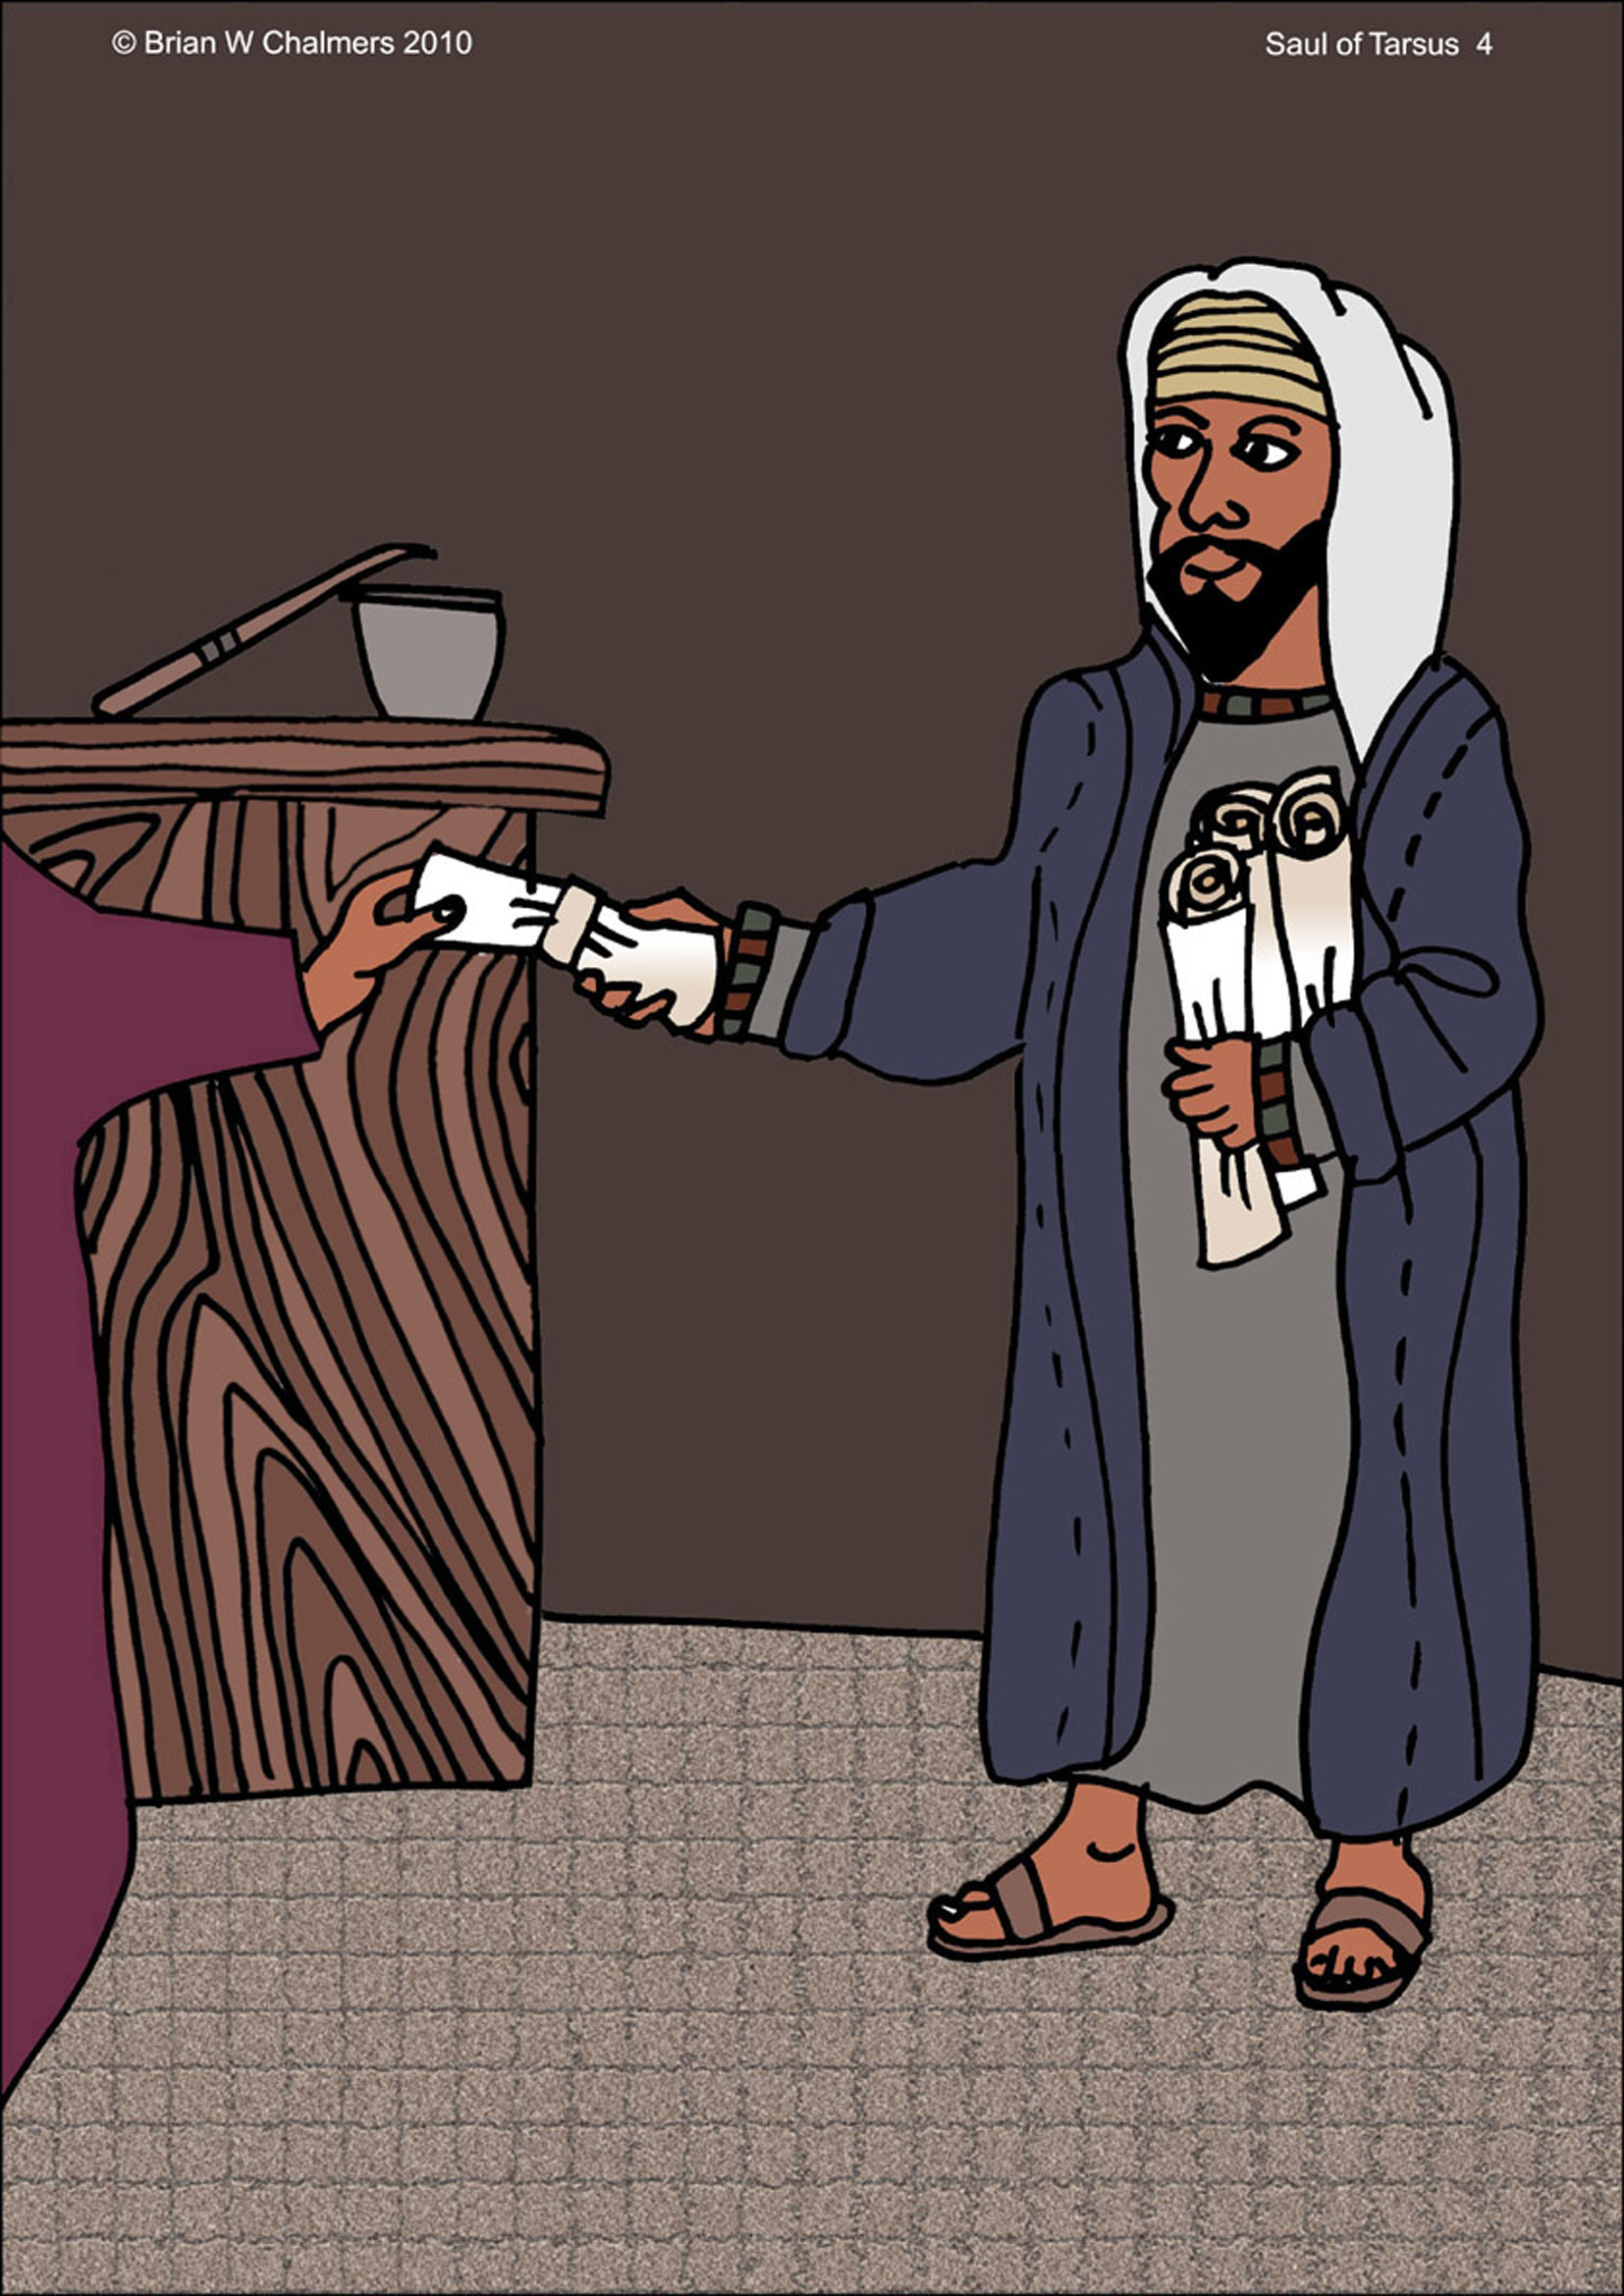 Childrens coloring sheet of saul and ananias - Saul Gets Letters From Leaders